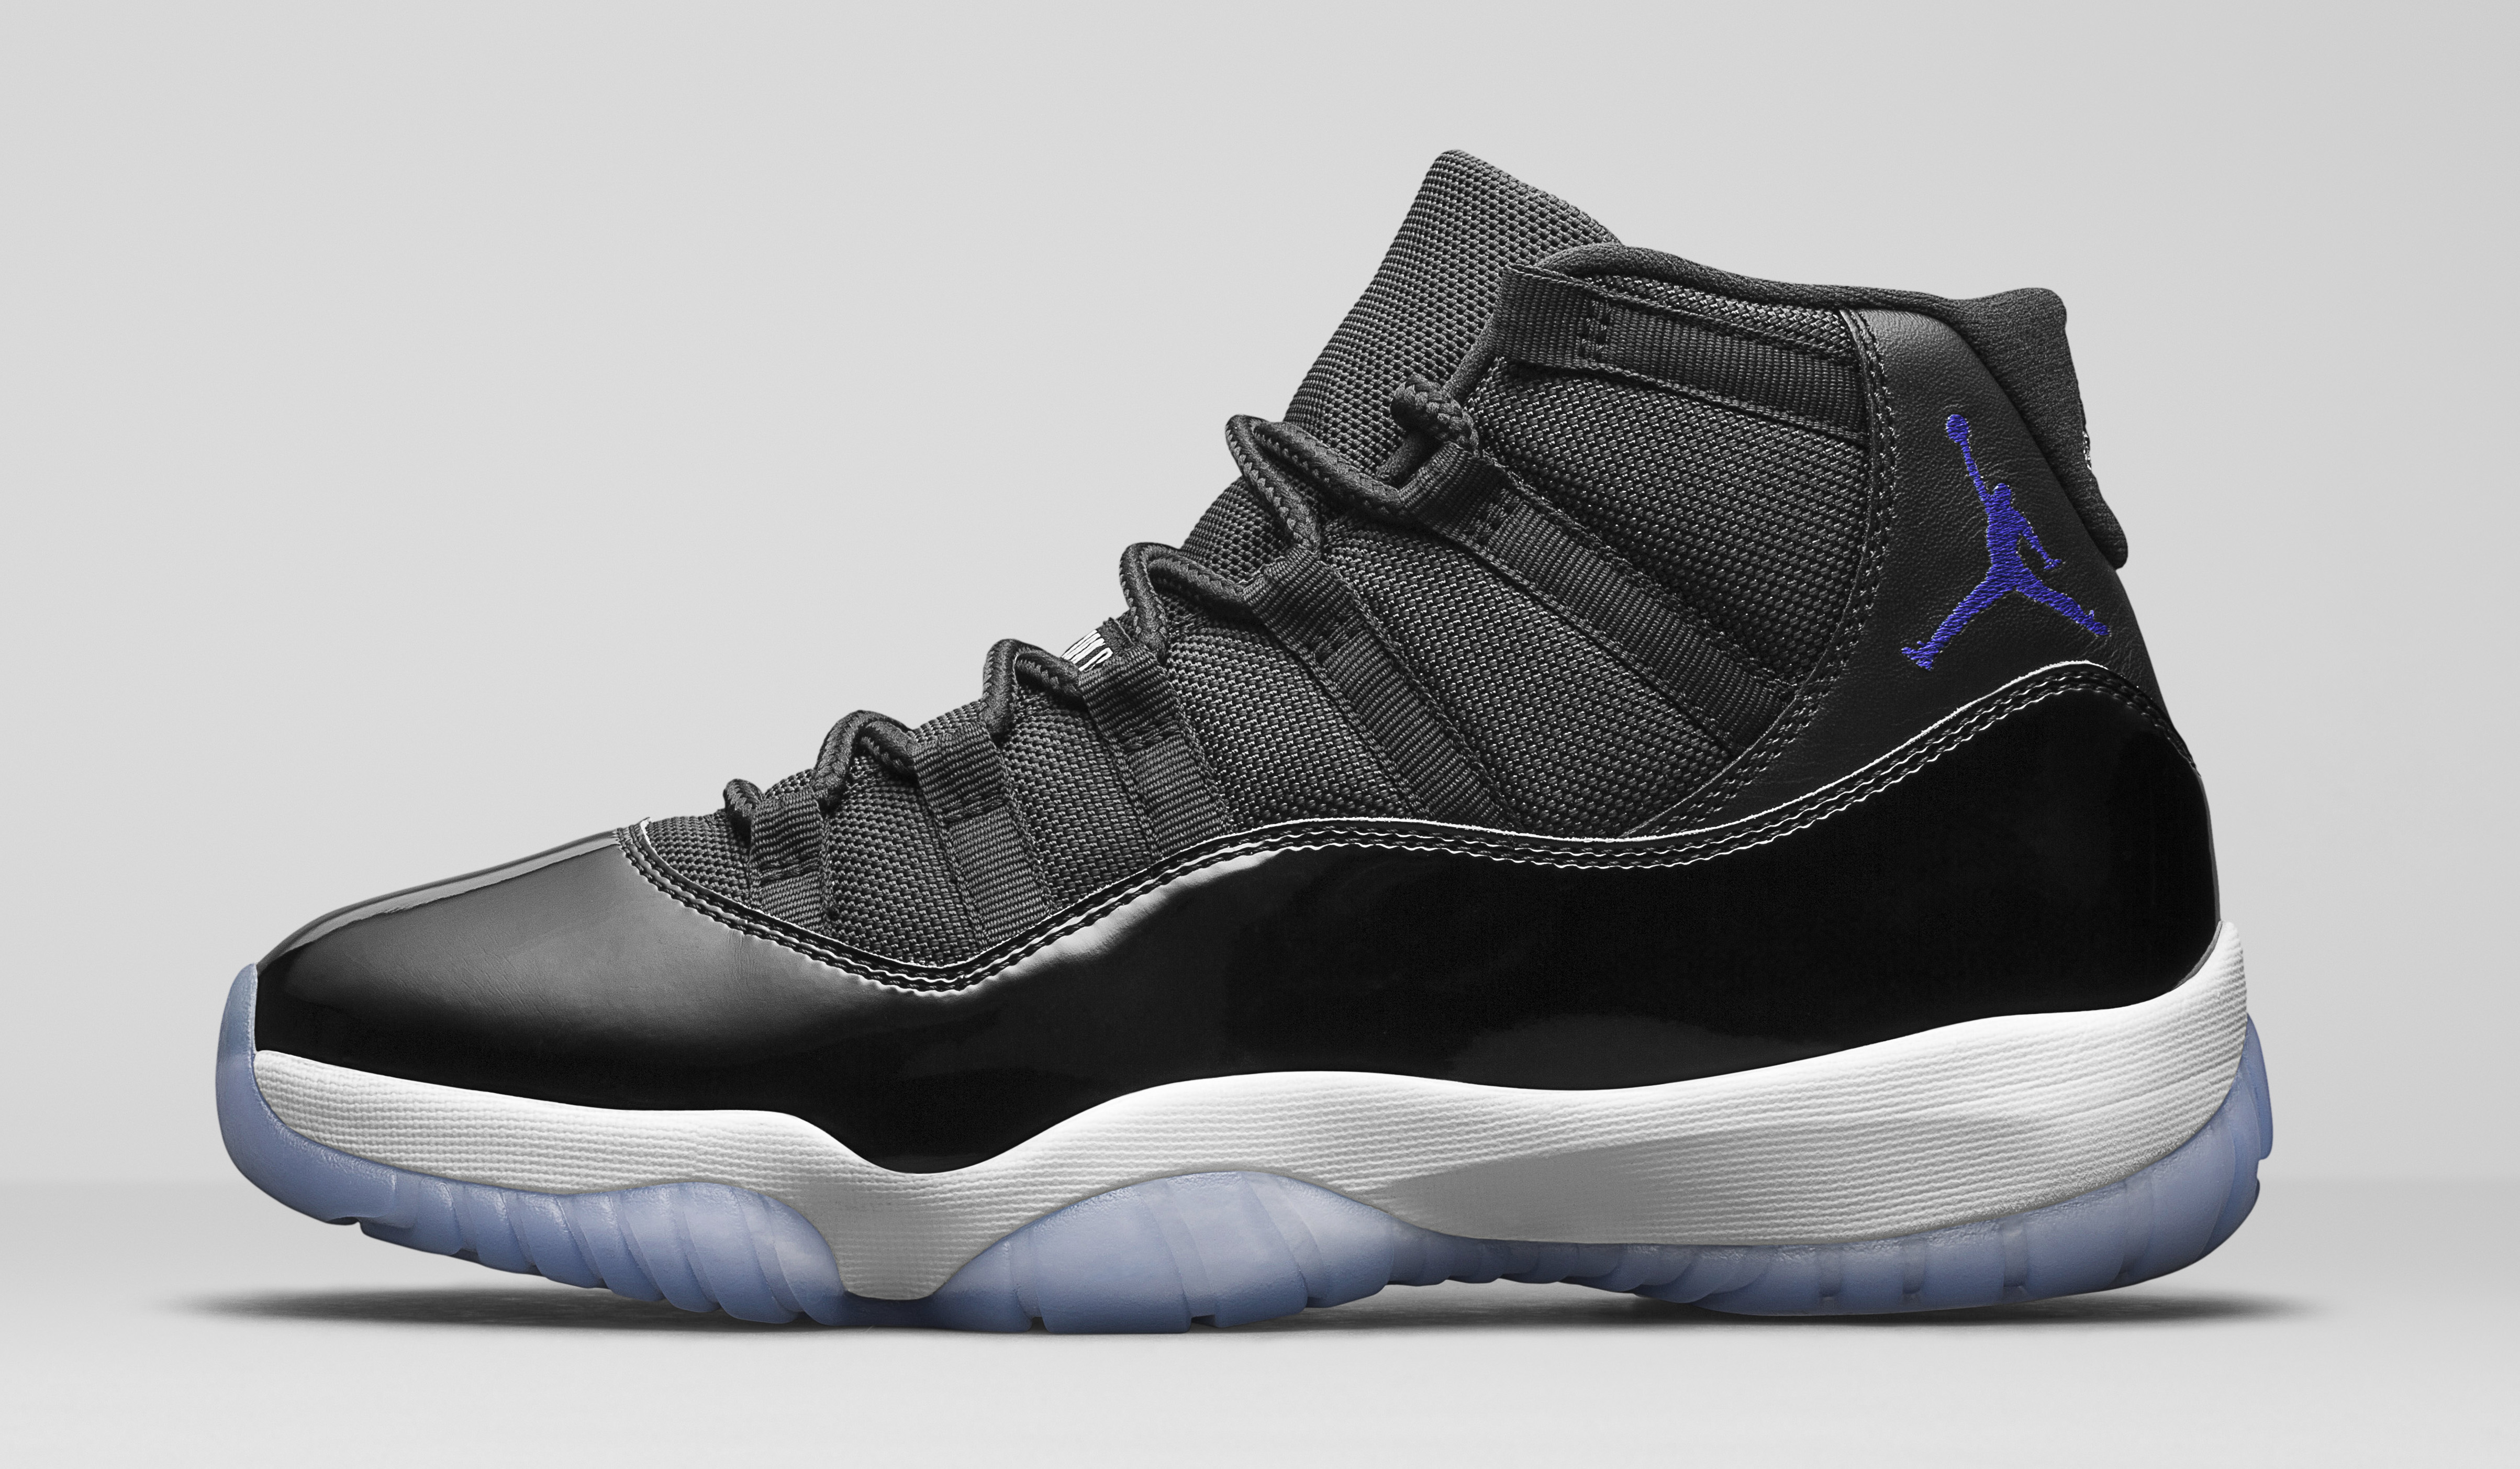 92c230928f0bc5 ... How to Buy Space Jam Air Jordan 11 Finish Line Sole Collect ...